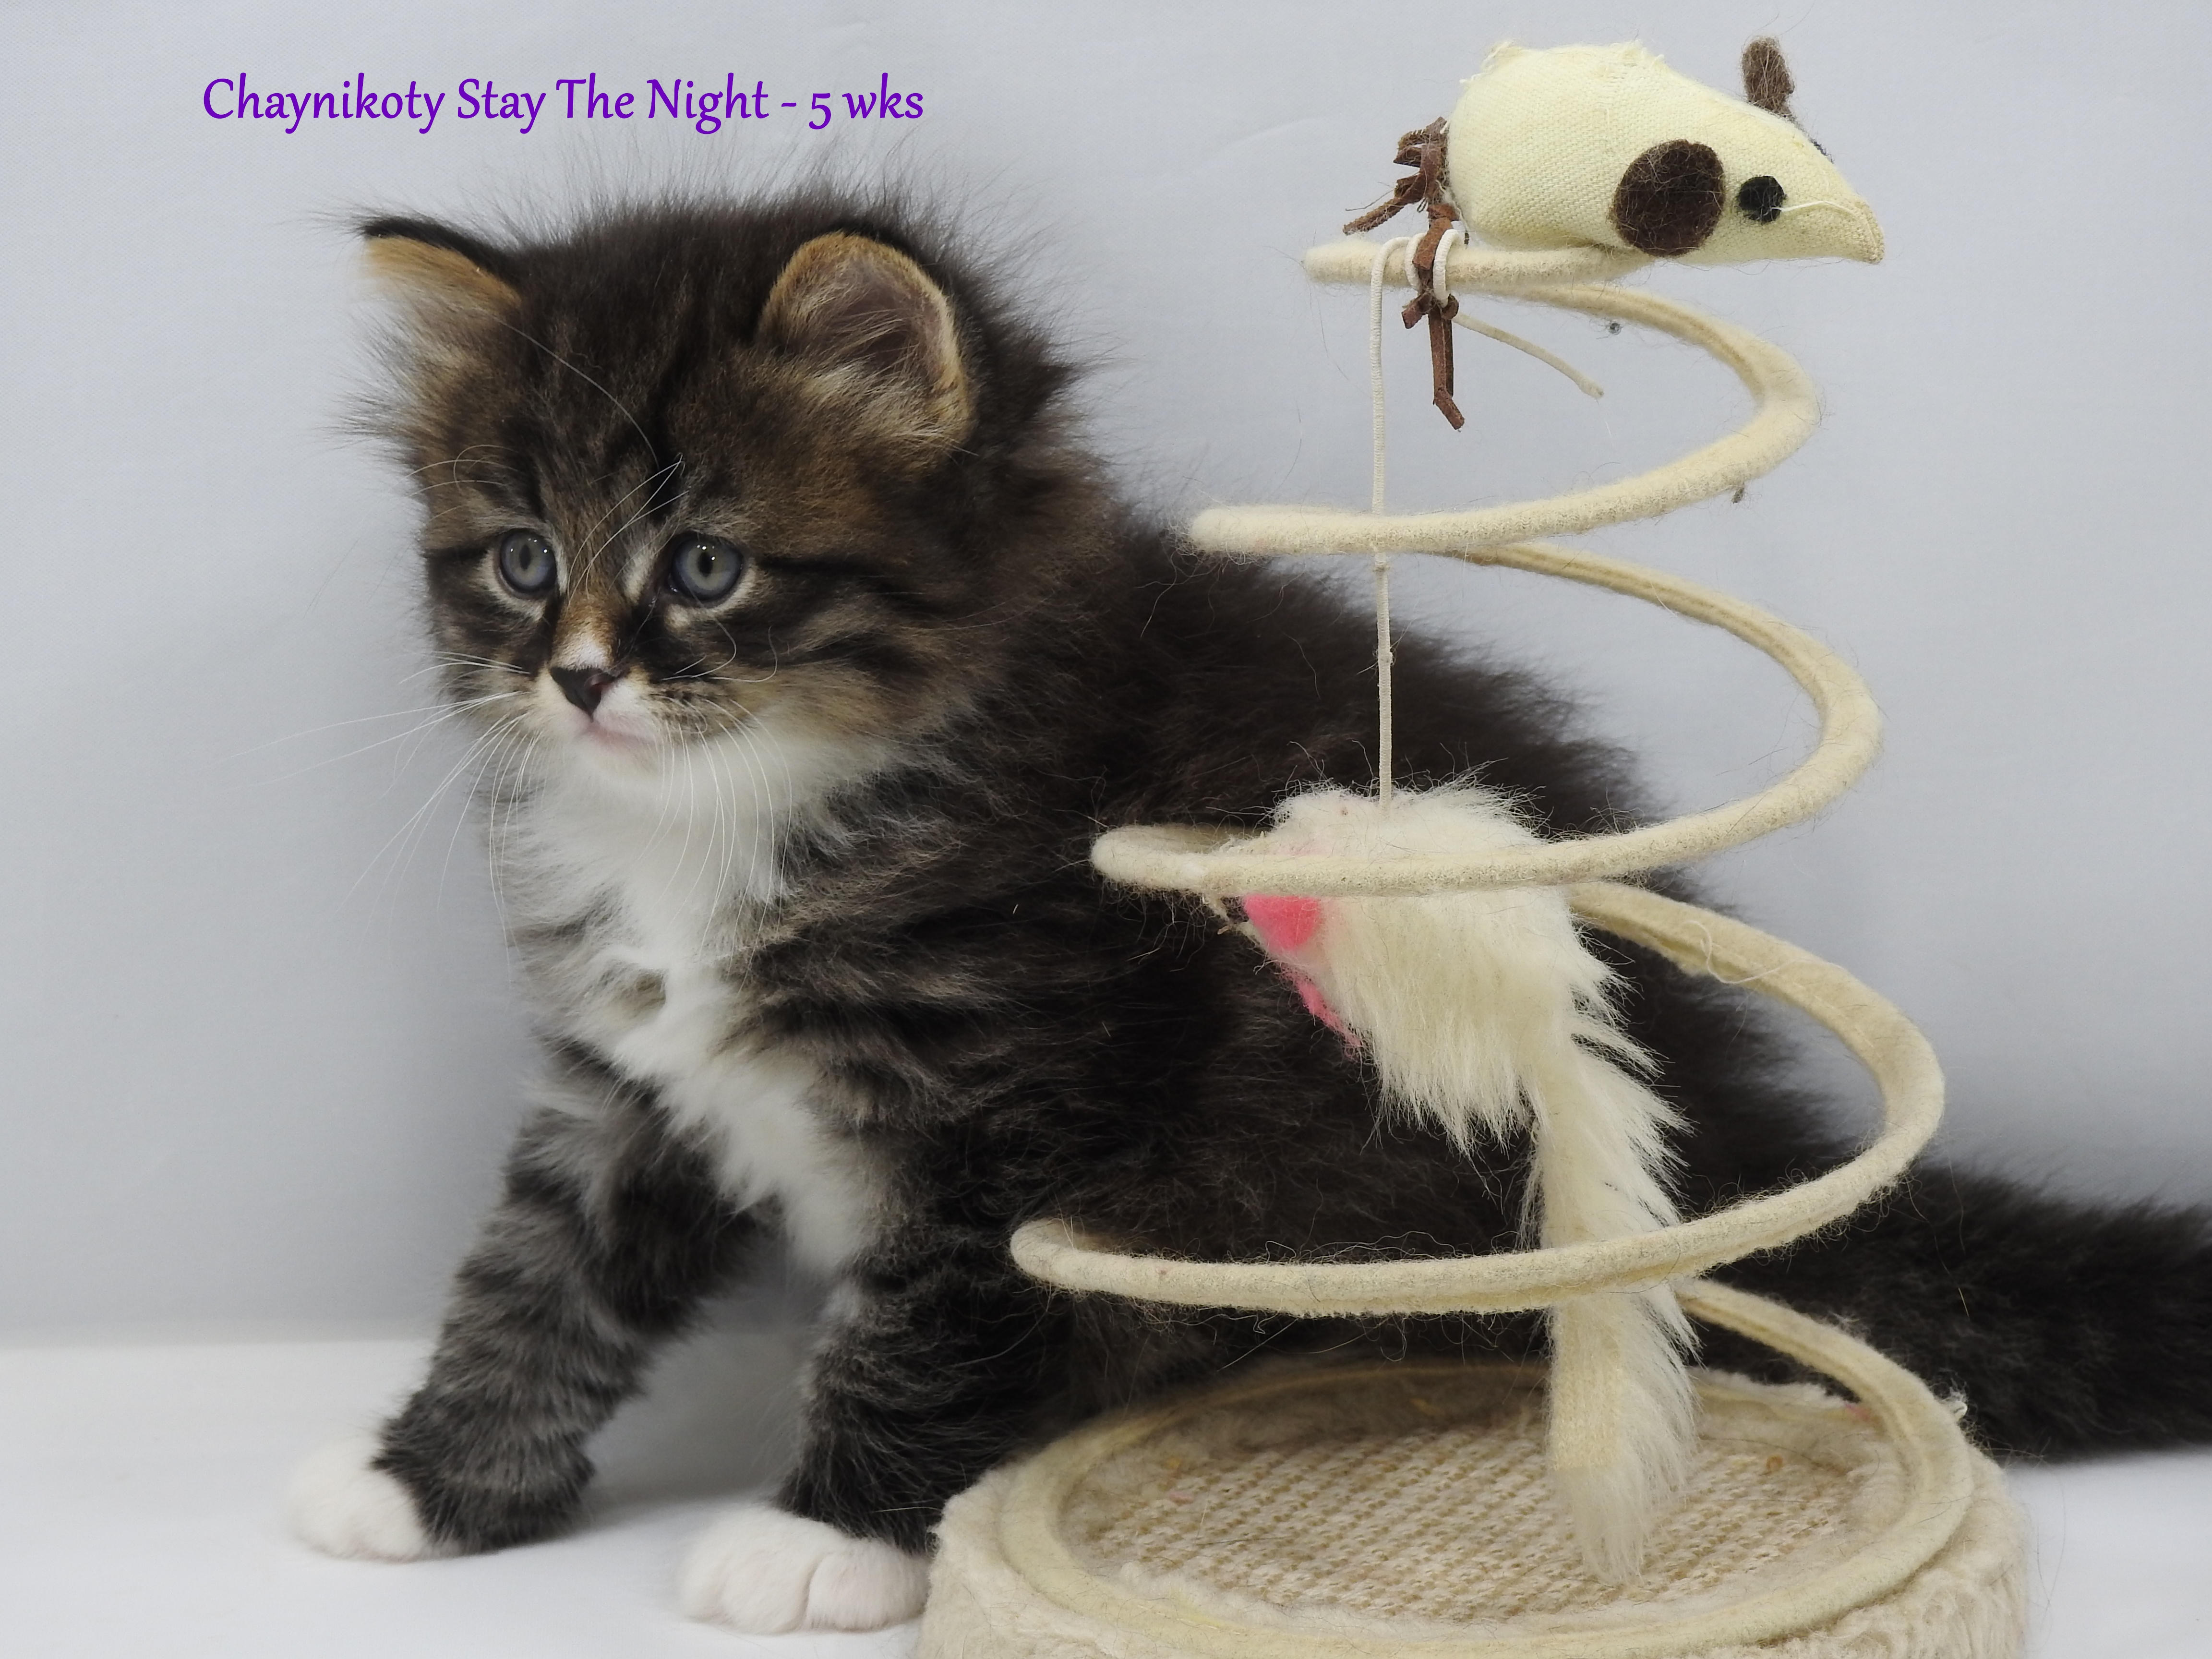 Chaynikoty Stay The Night - 5 wks